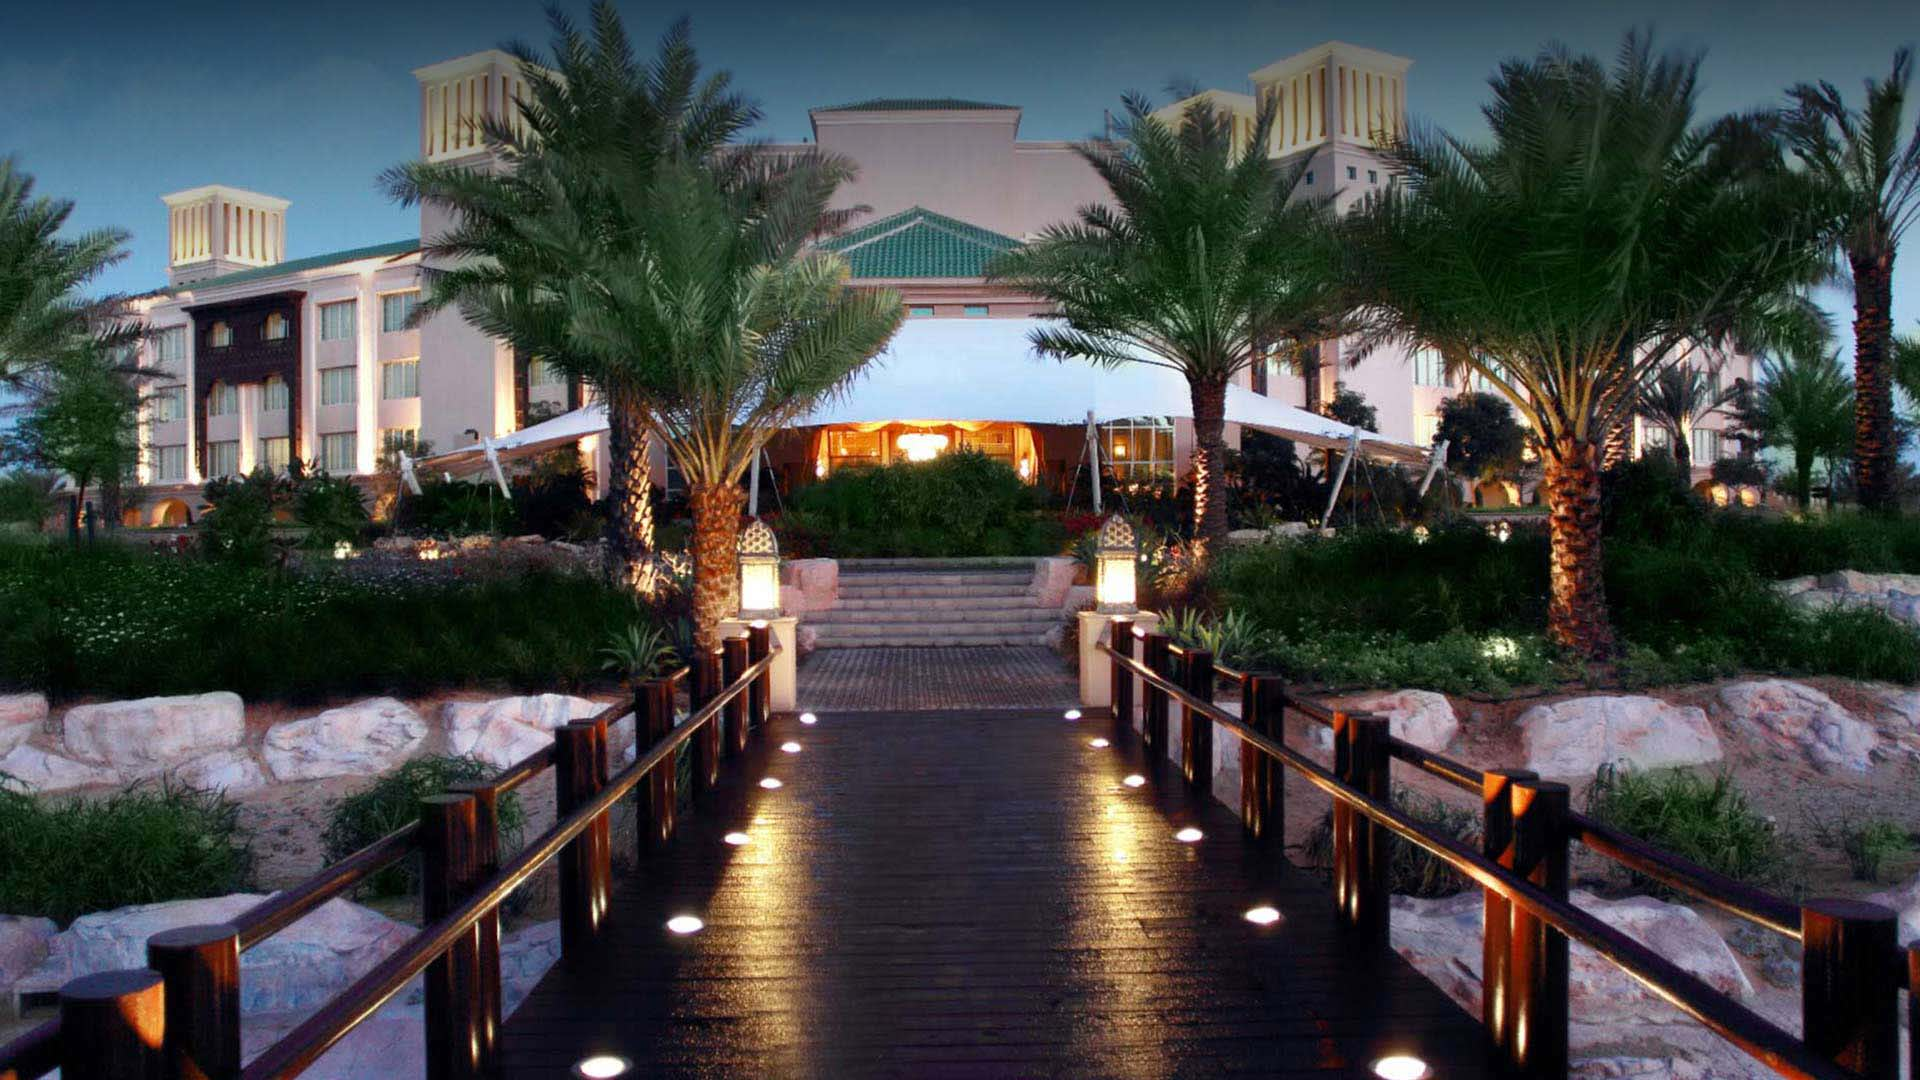 https://assets.anantara.com/image/upload/q_auto/media/minor/anantara/images/desert-islands-resort--spa-by-anantara/the-resort/desktop-banner/desert_islands_by_anantara_header_1920x1080.jpg